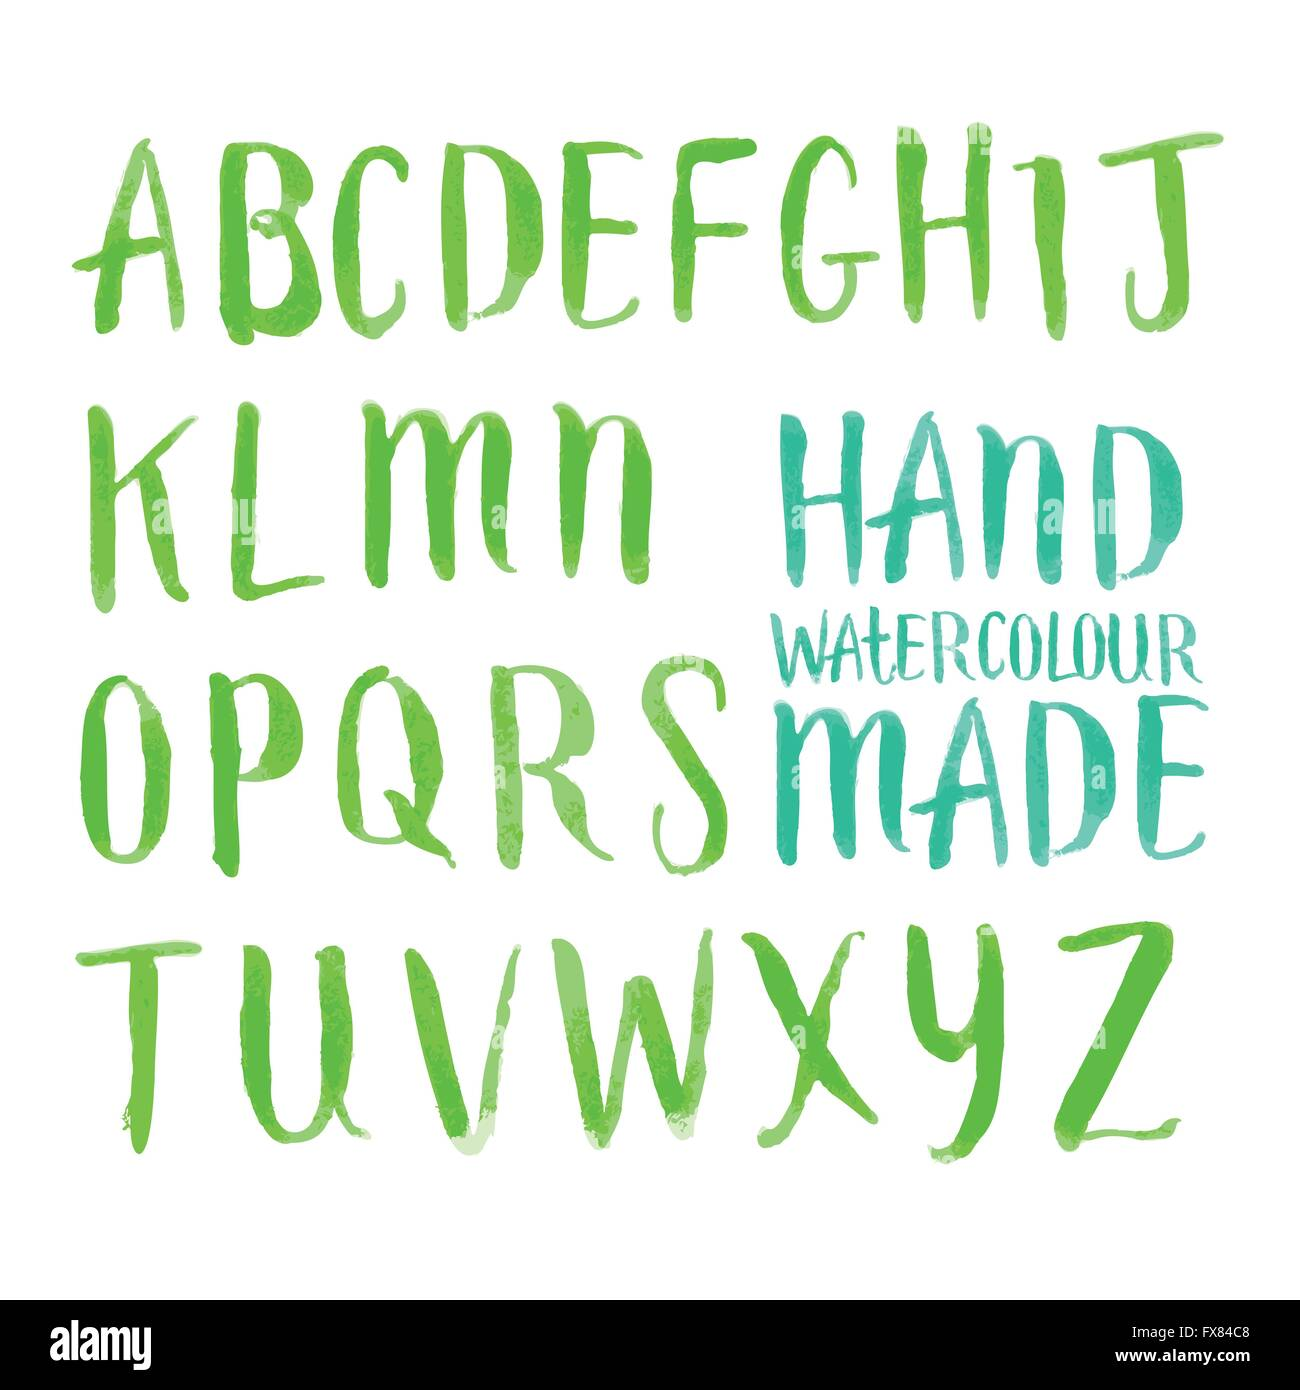 Watercolour Brush Letters. Hand made Alphabet lettering in brushed watercolour. Vector illustration. - Stock Image